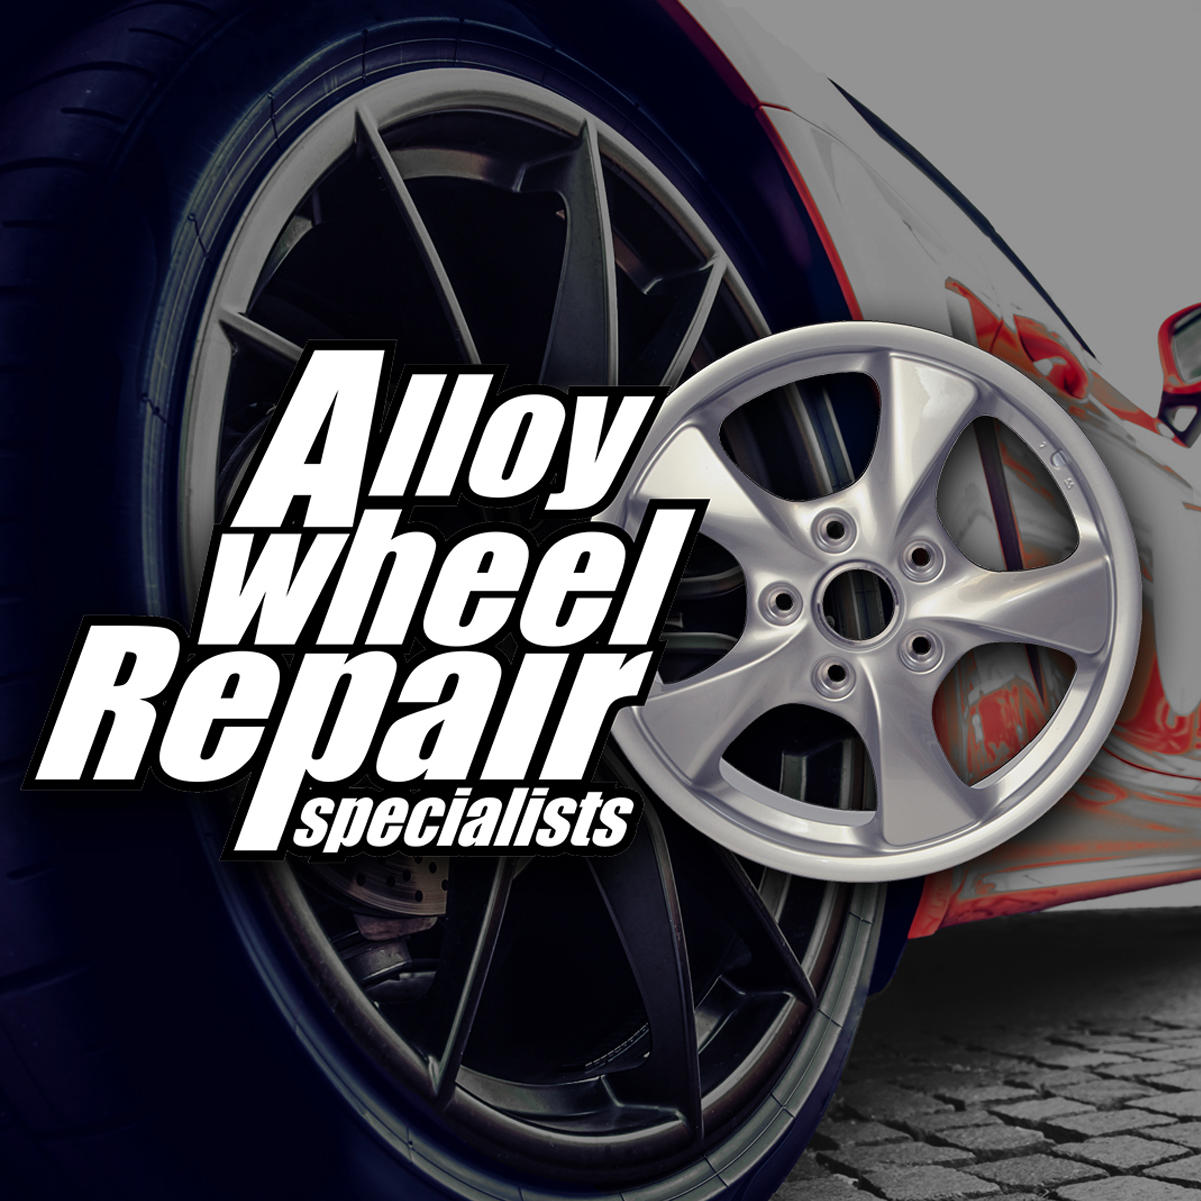 Alloy Wheel Repair Specialists of South Florida image 3